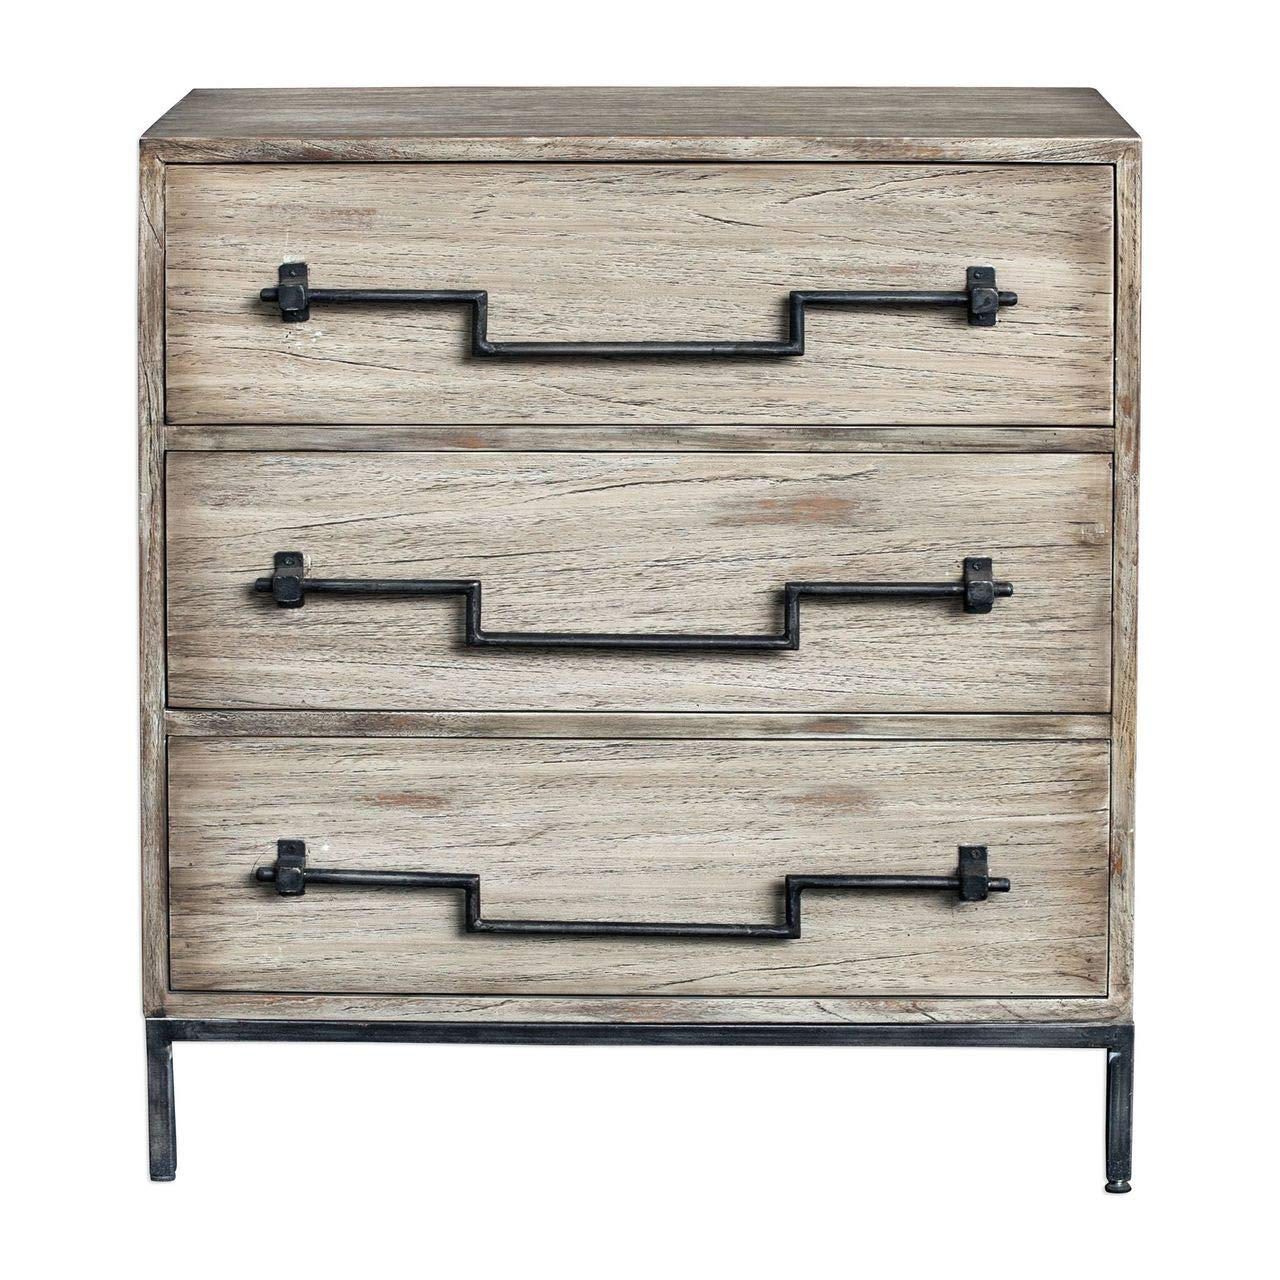 Uttermost Accent Chest in Aged Ivory Finish by Uttermost